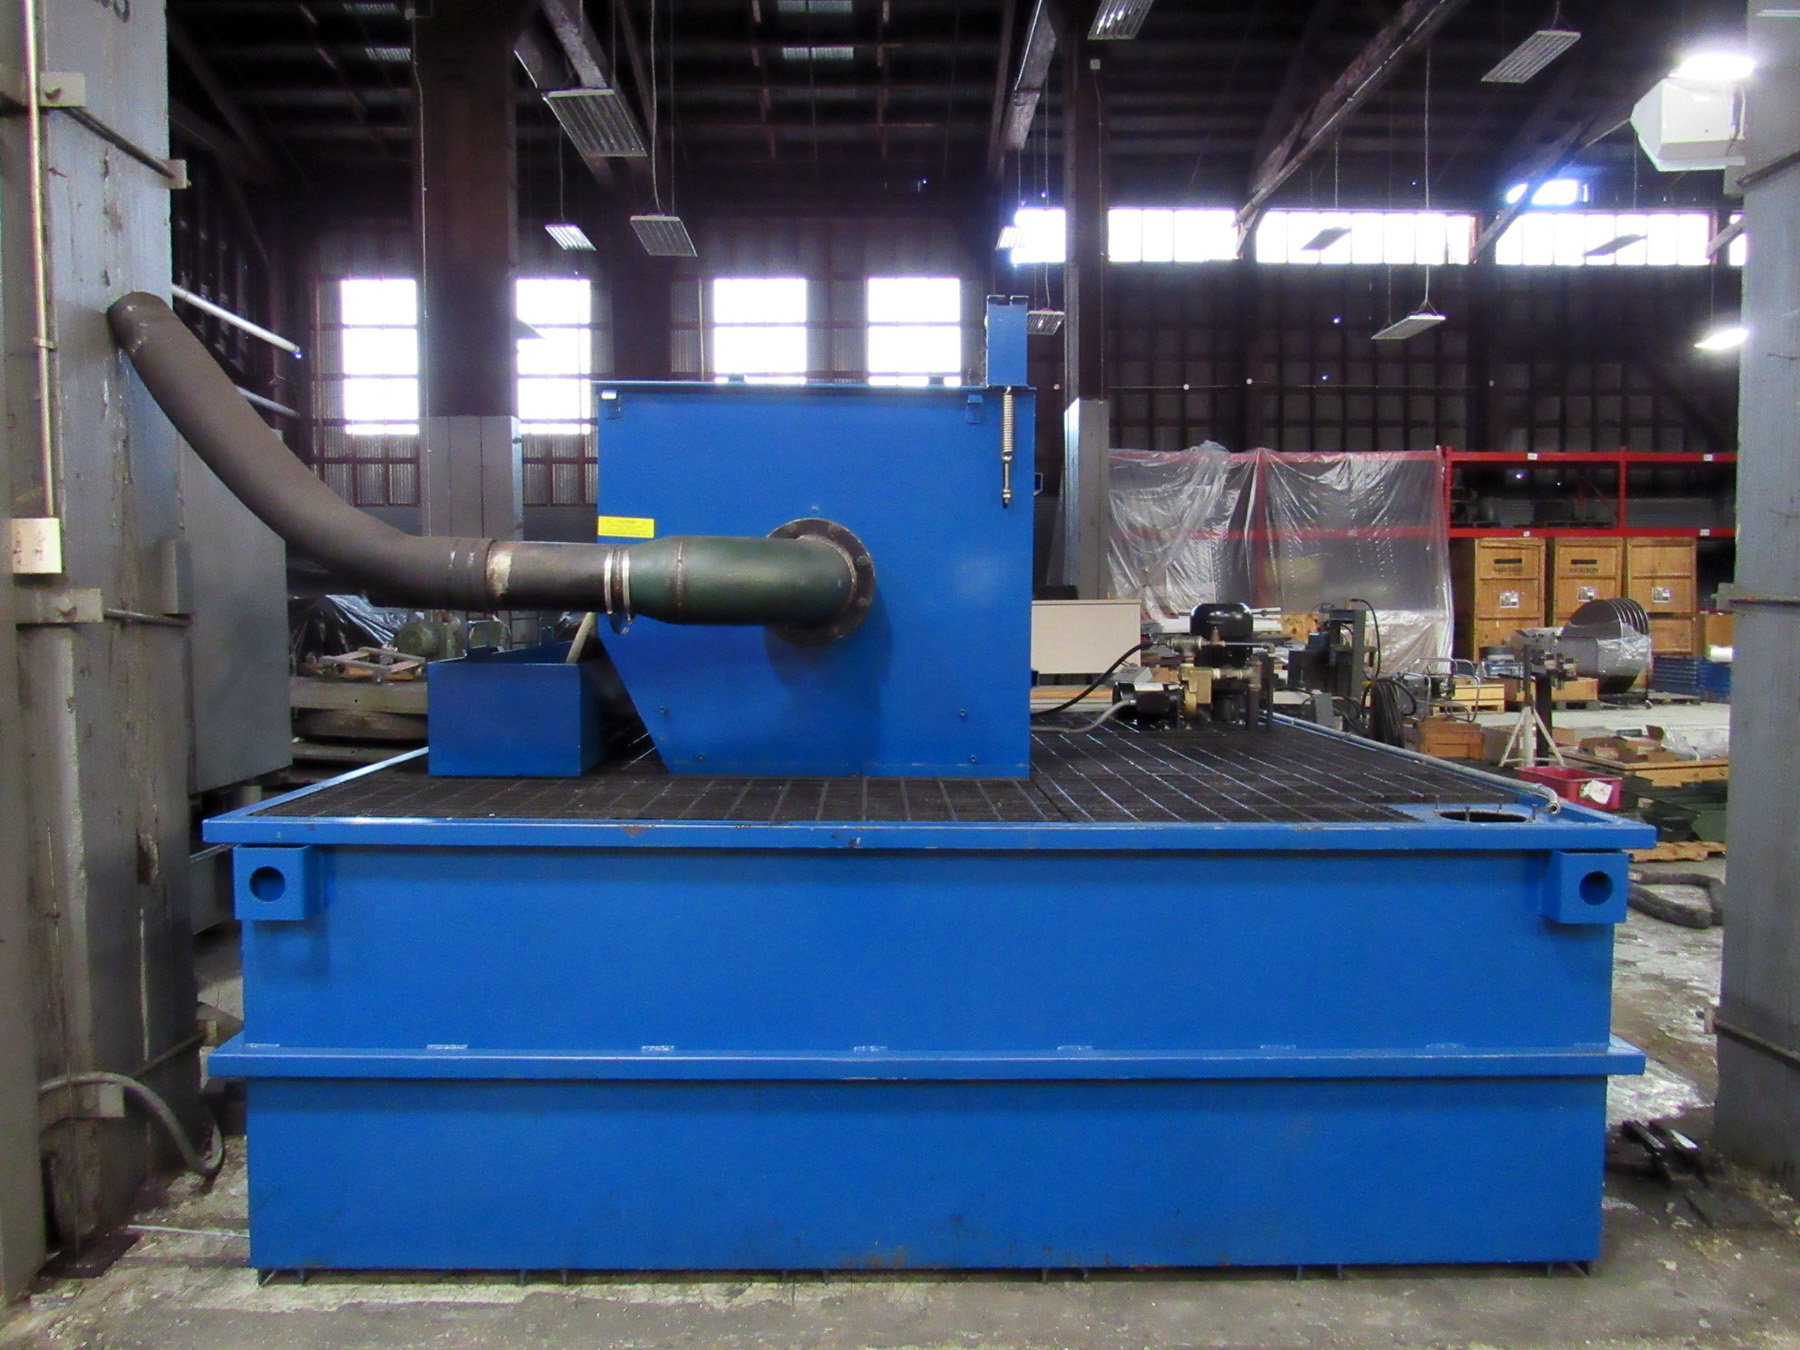 USED, 2000 GALLON MONLAN (PRAB) MODEL DF1500 DRUM TYPE COOLANT SYSTEM WITH PAPER FILTRATION SYSTEM